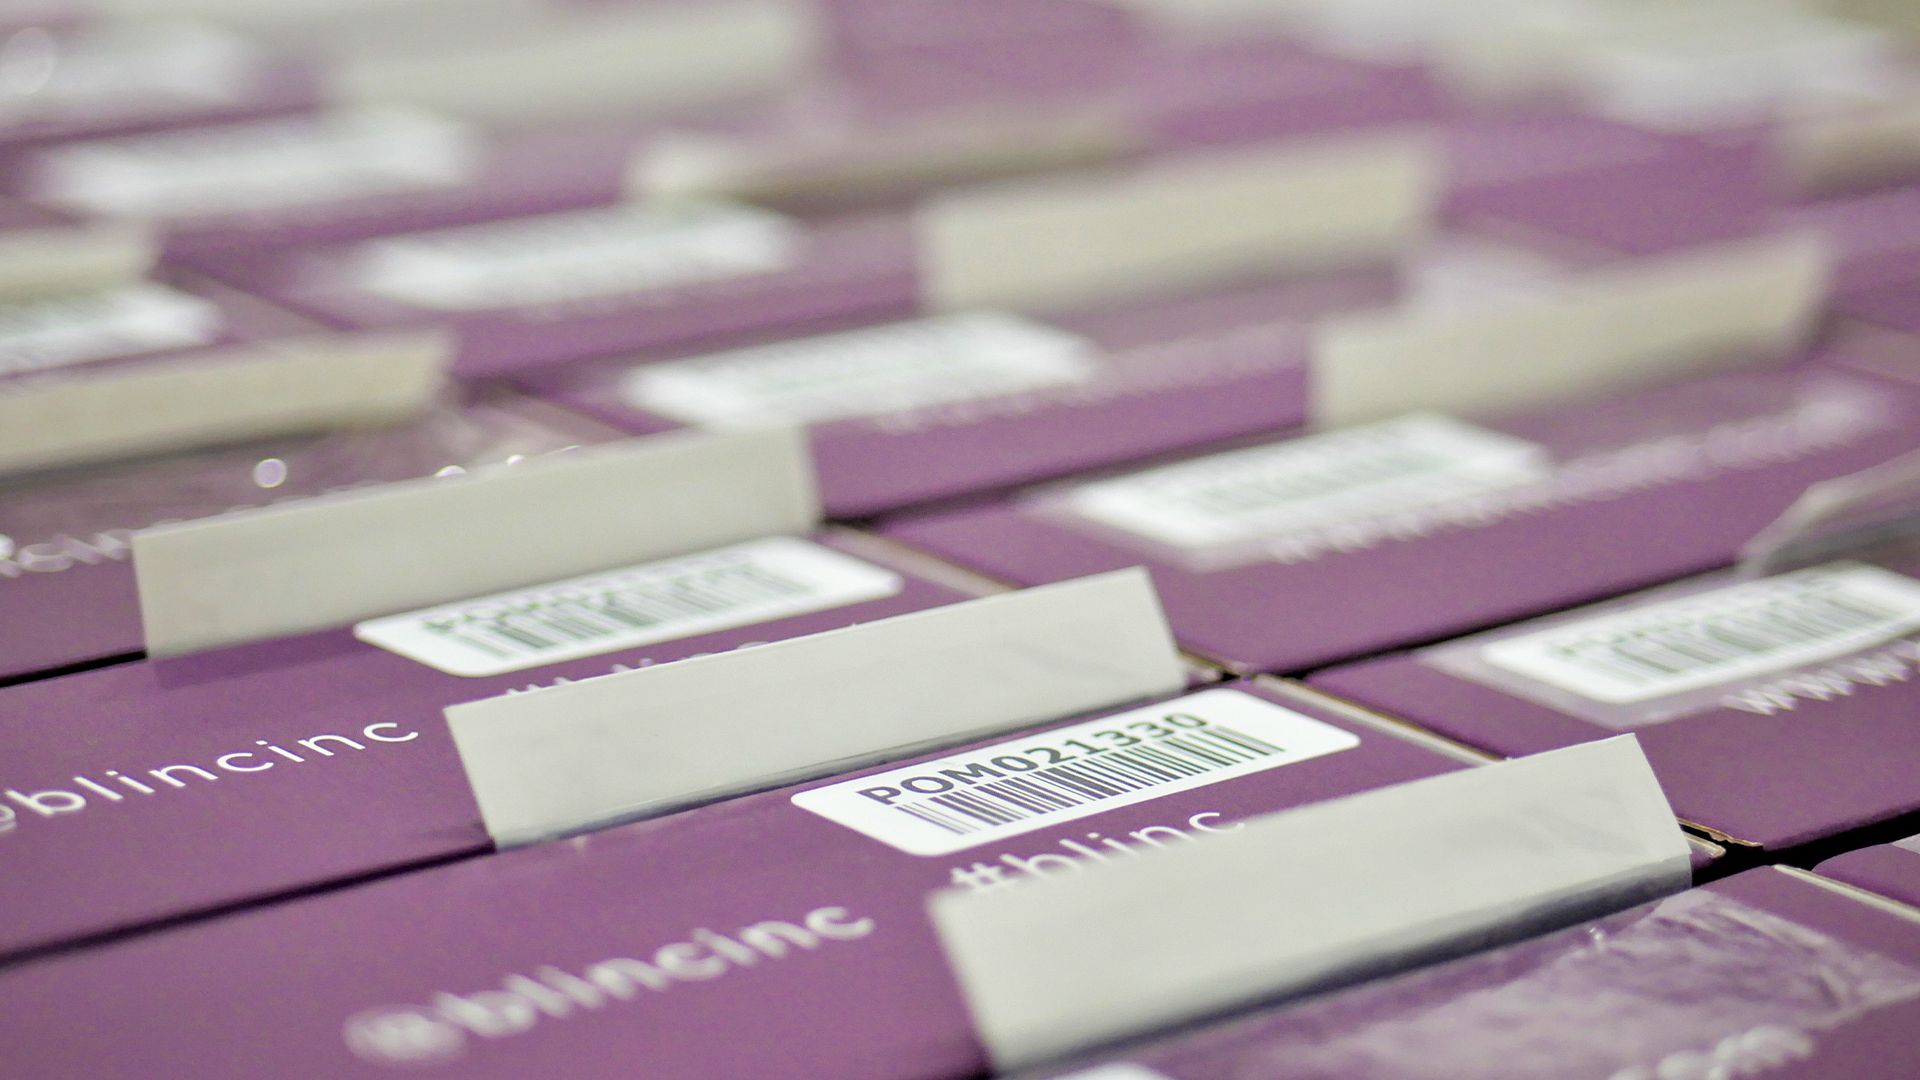 purple boxes ready for shipment